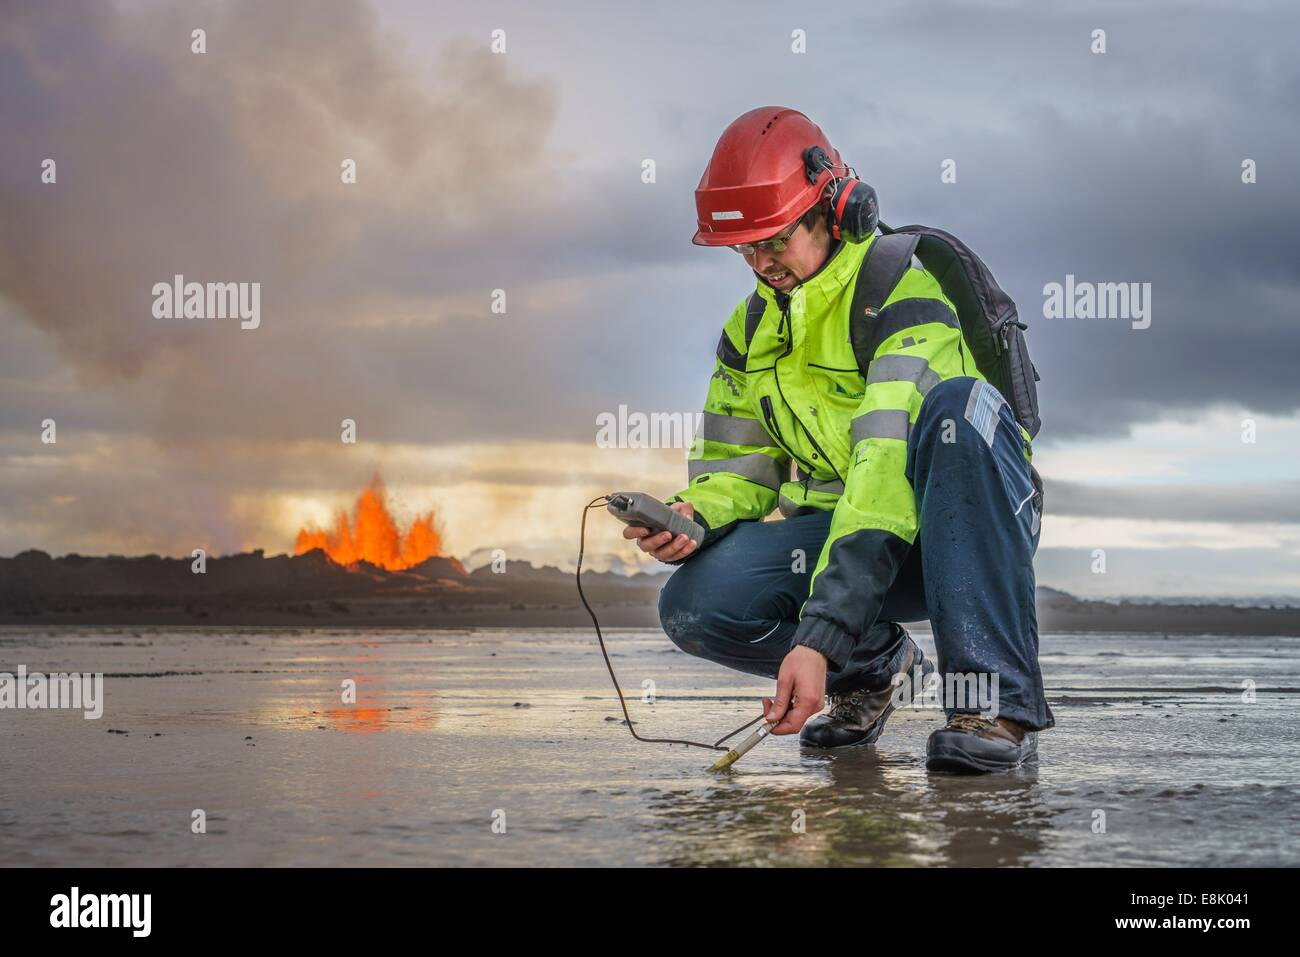 Scientist taking measurements by the eruption site at Holuhraun, near the Bardabunga Volcano, Iceland. - Stock Image